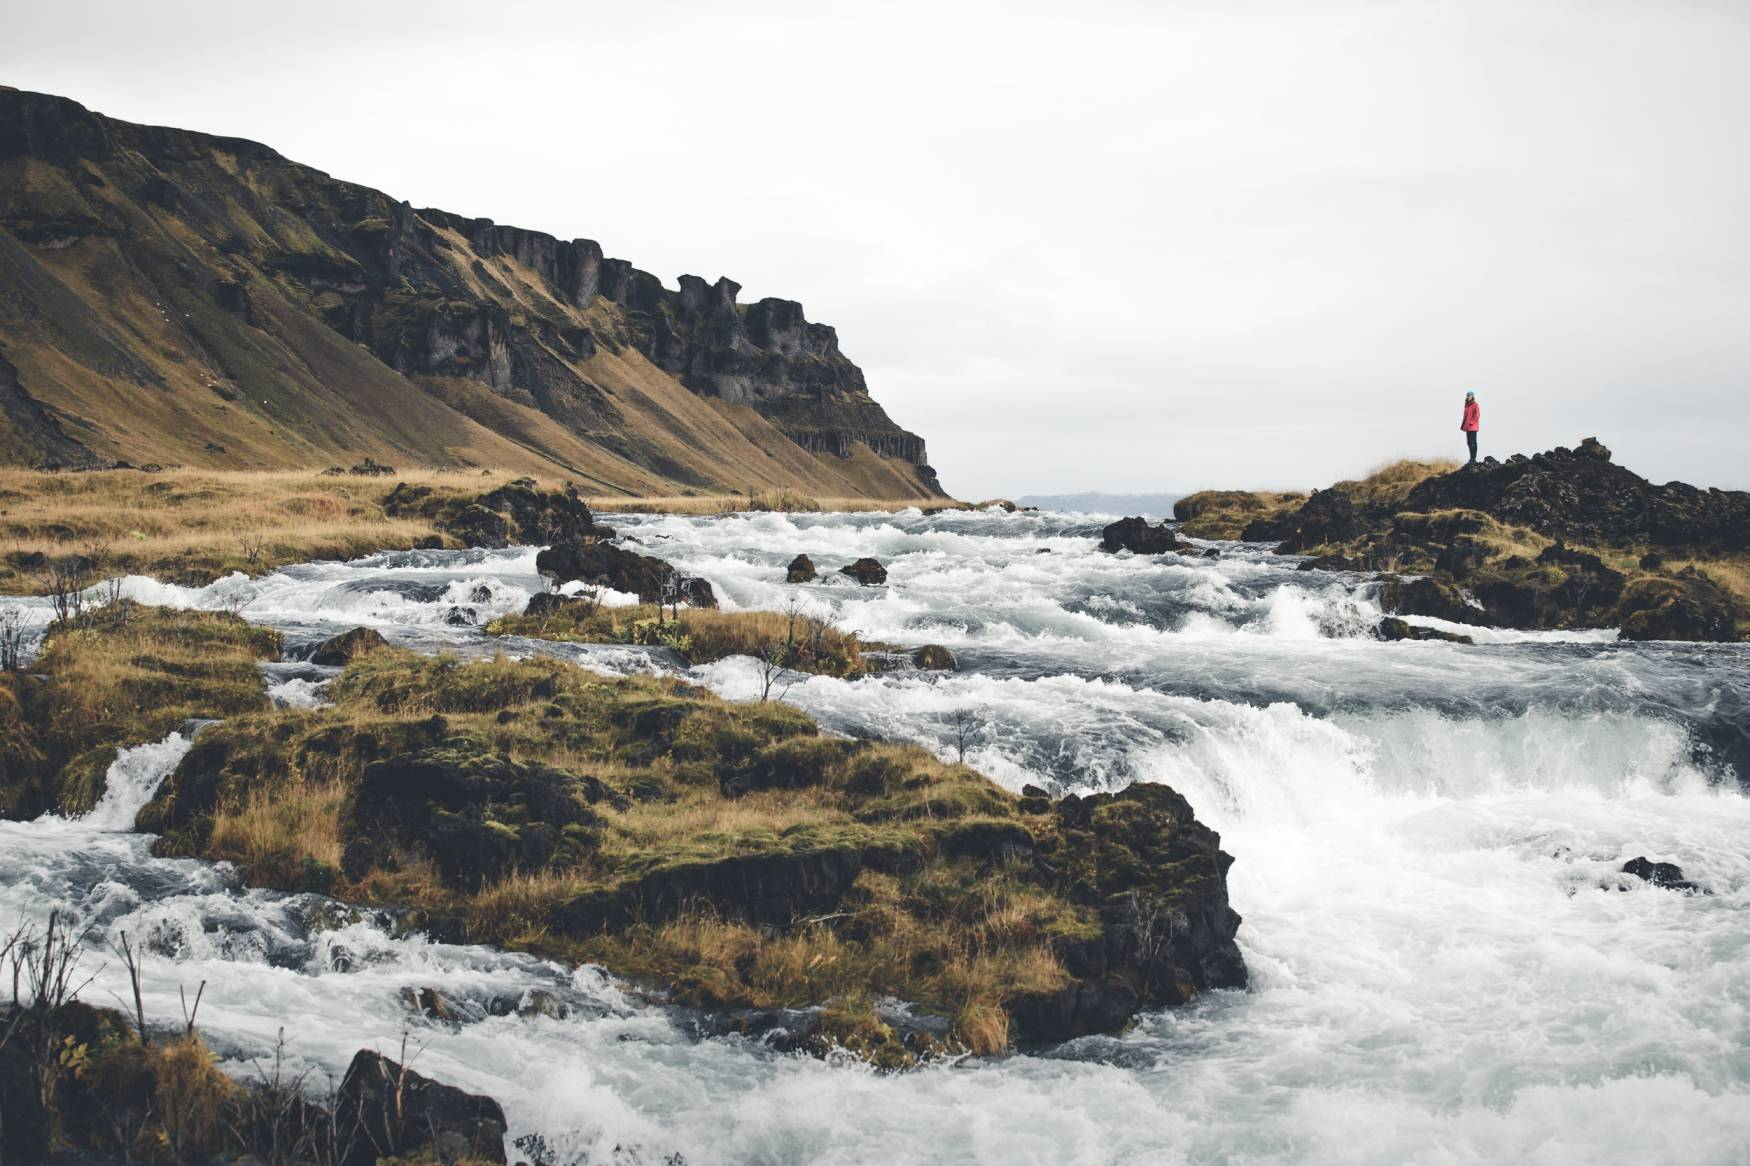 Woman-in-red-jacket-standing-by-river-in-Iceland-with-cliffs-on-a-cloudy-and-rainy-day